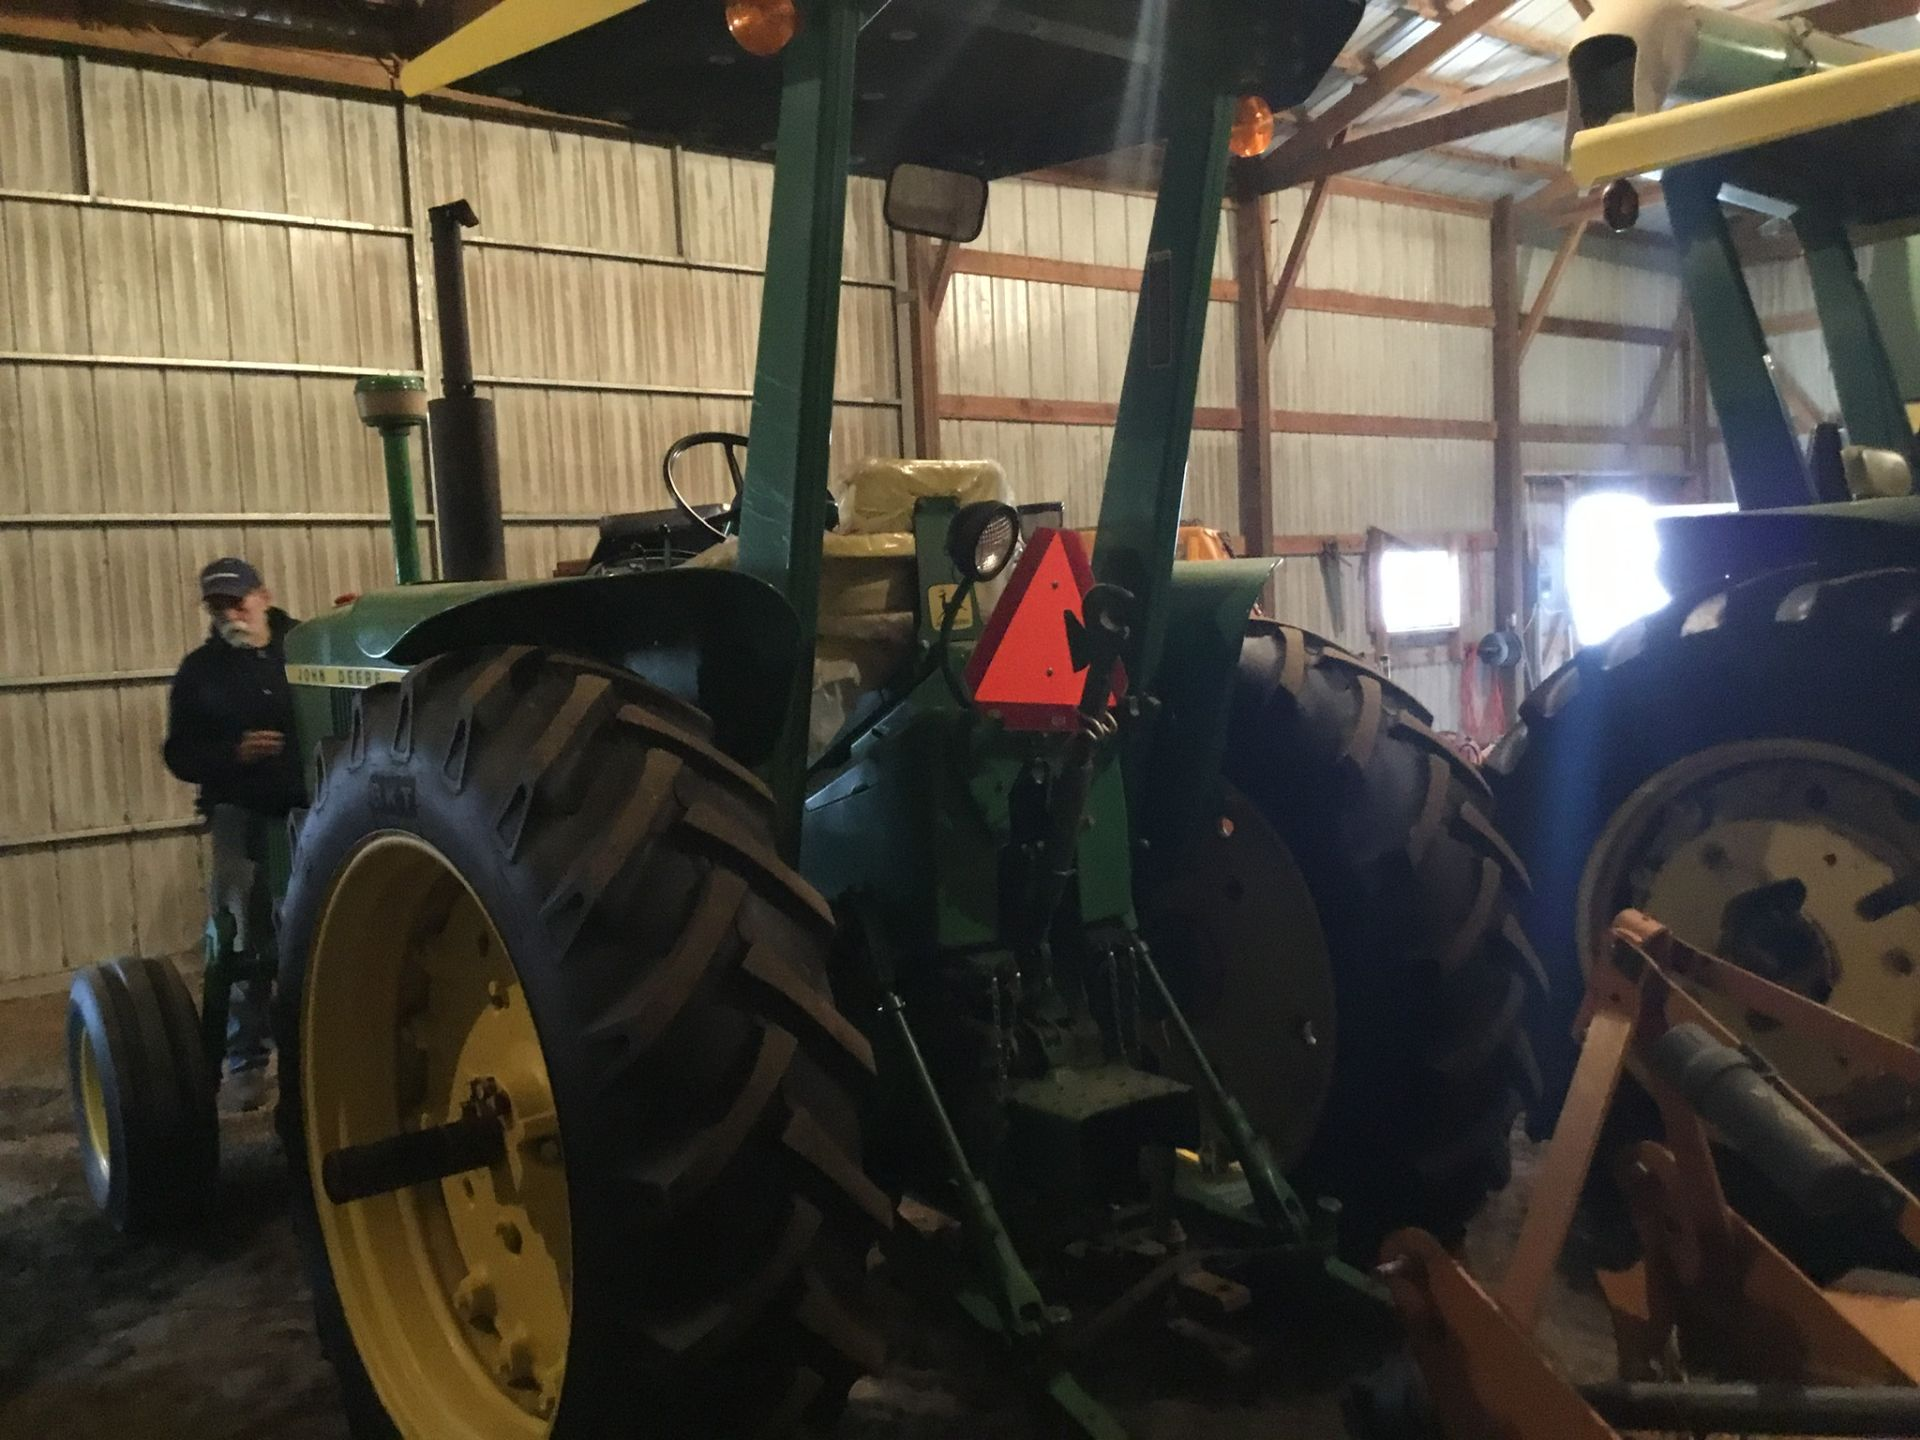 1966 John Deere 3020 Gas, JD Wide Front, Synchro Range, Roll Bar & Canopy, Dual Hydraulic Remotes, - Image 2 of 13